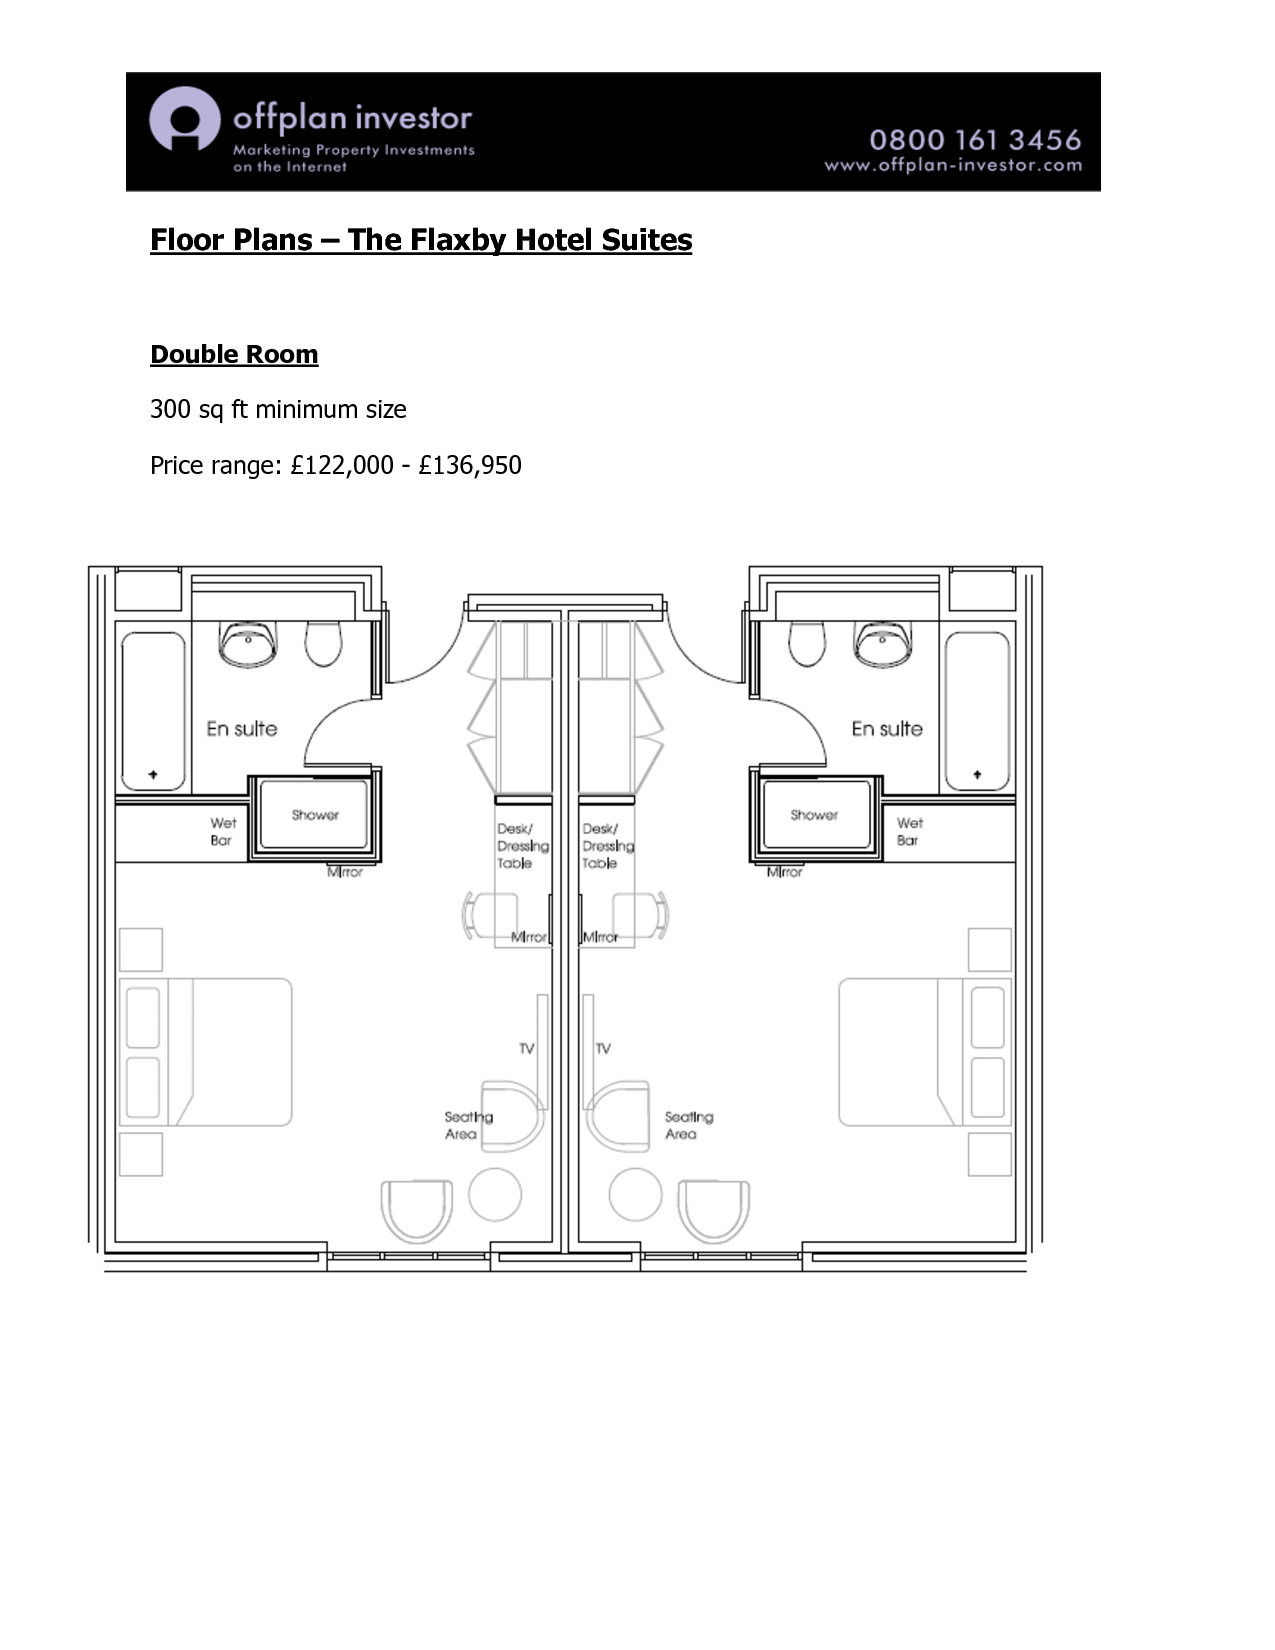 Hotel Room Floor Plans Floor Plans The Flaxby Hotel Suites Double Room Sq Ft Hotel Room Design Hotel Floor Plan Small Hotel Room